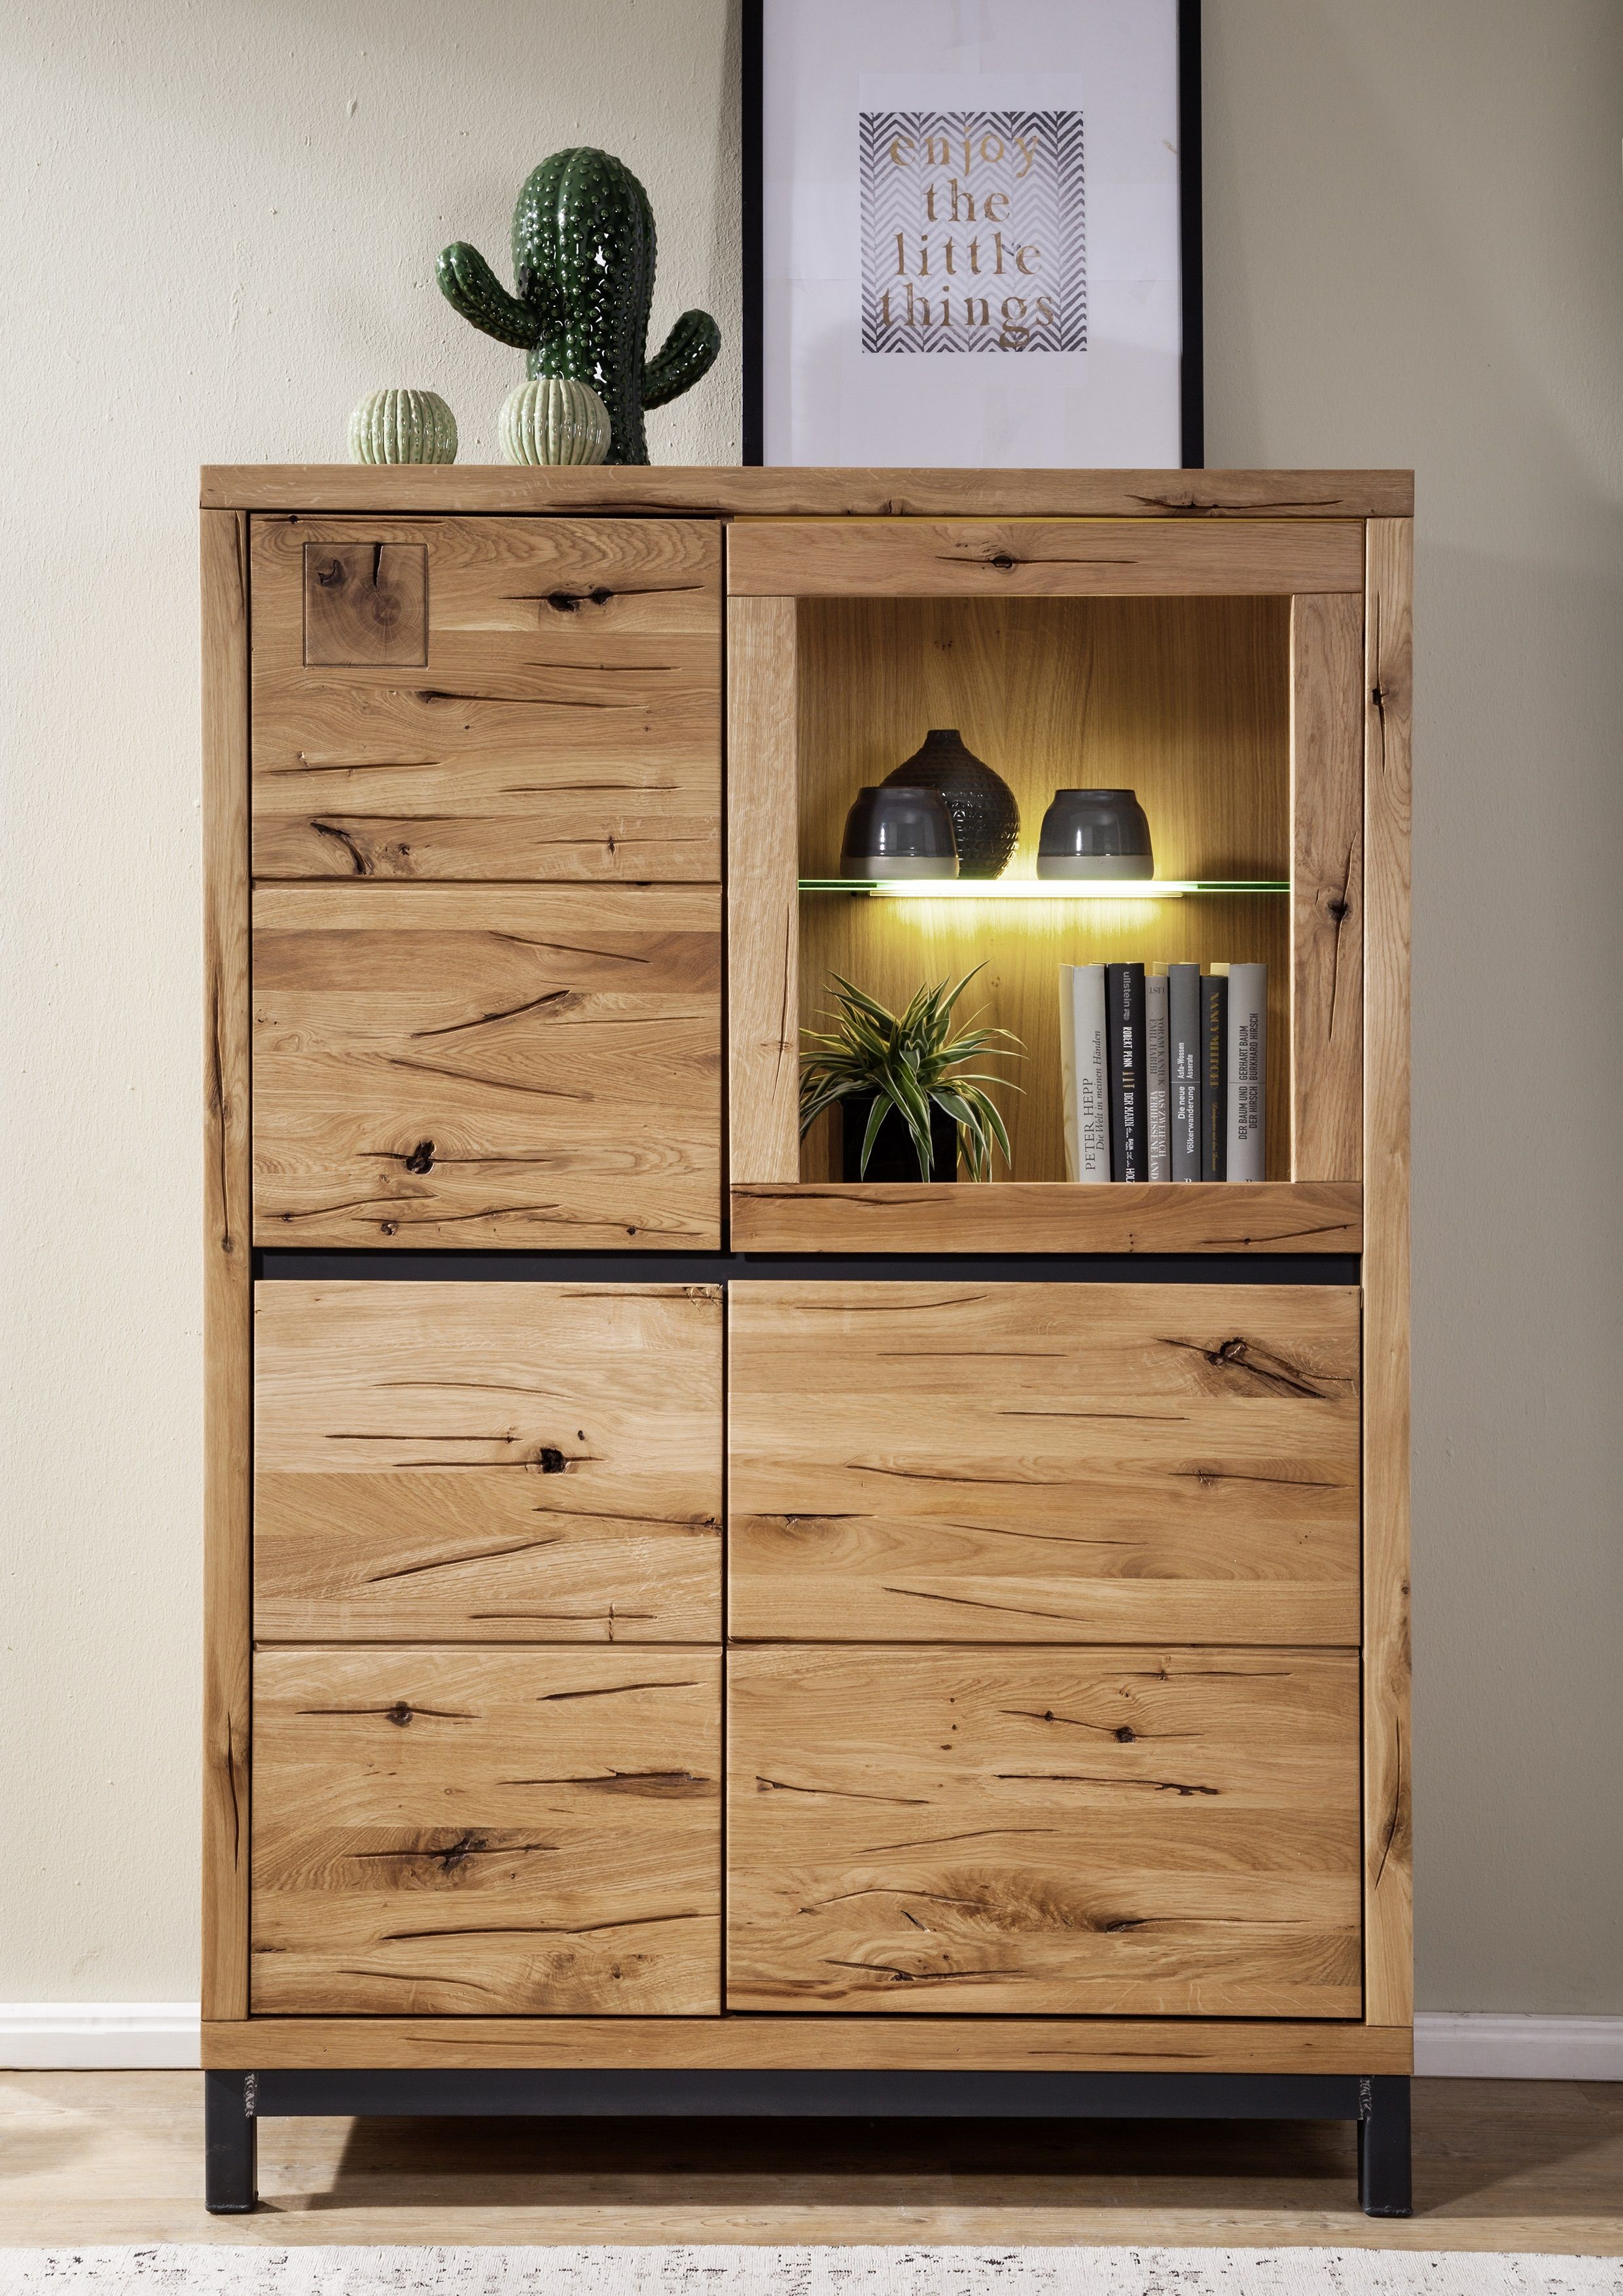 Tall Display Cabinet Storage Furniture 2 Glass Doors Home Living Room Show Case Storage Furniture Living Room Glass Cabinet Doors Living Room Storage Cabinet